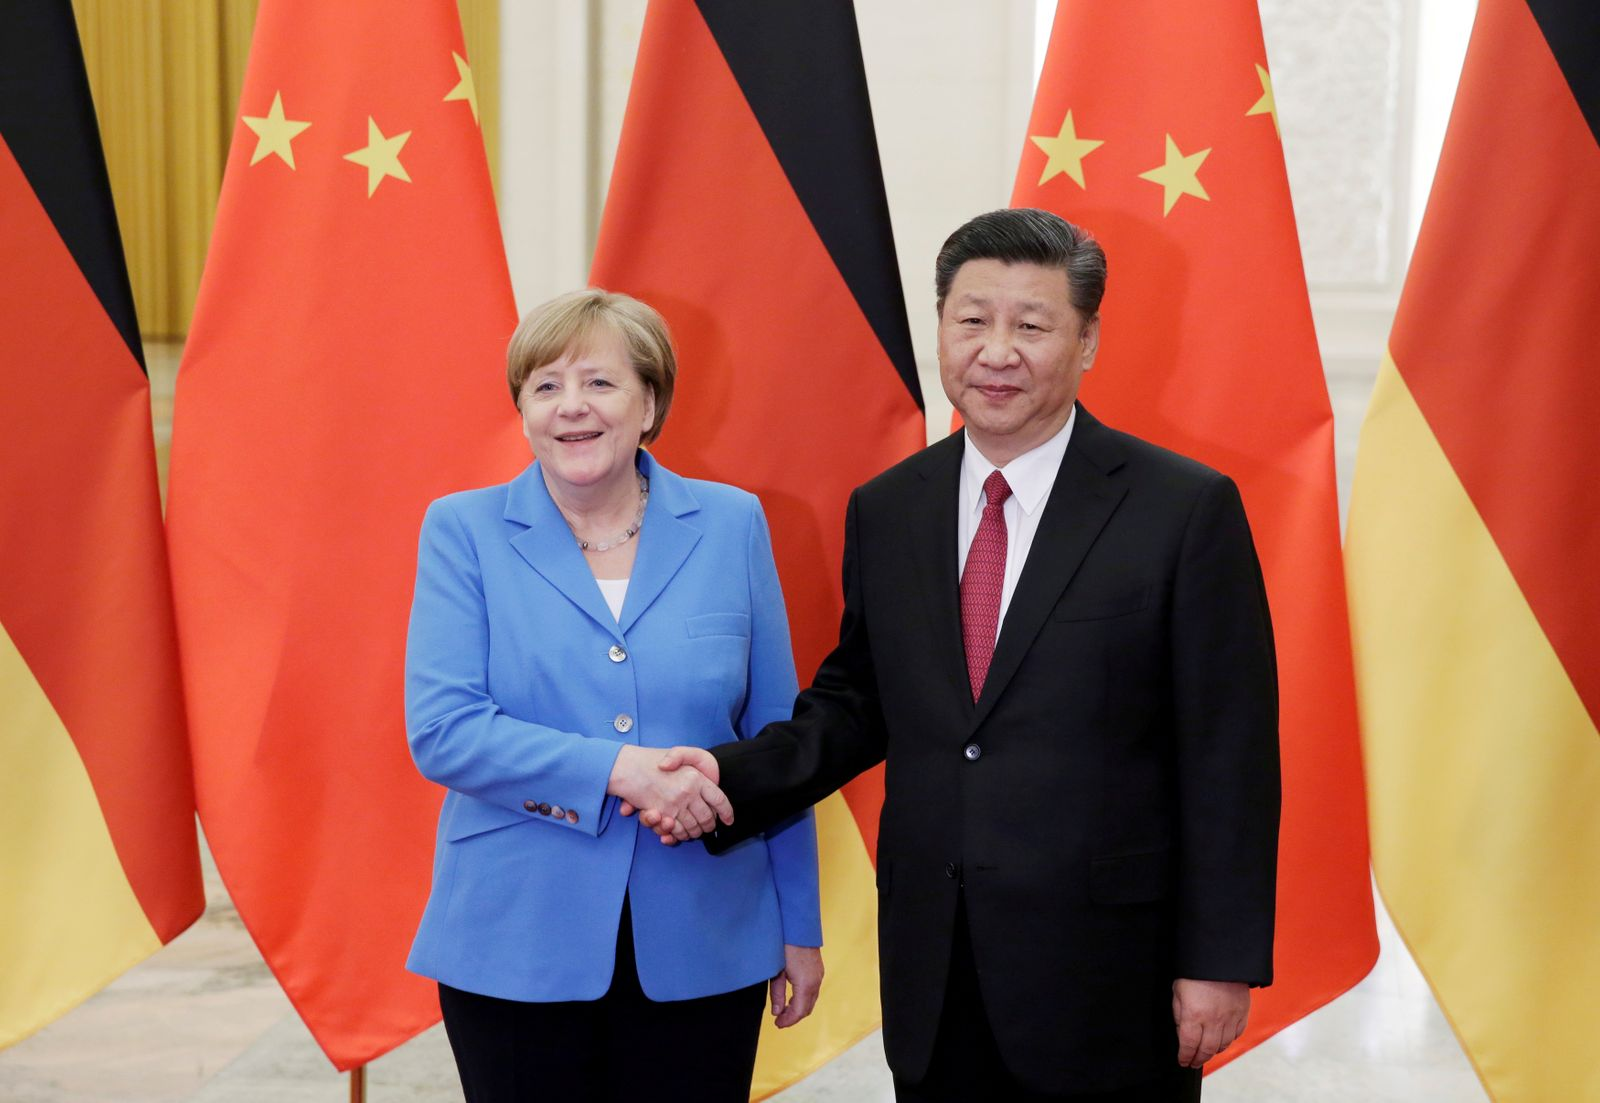 FILE PHOTO: China's President Xi Jinping meets German Chancellor Angela Merkel at the Great Hall of the People in Beijing